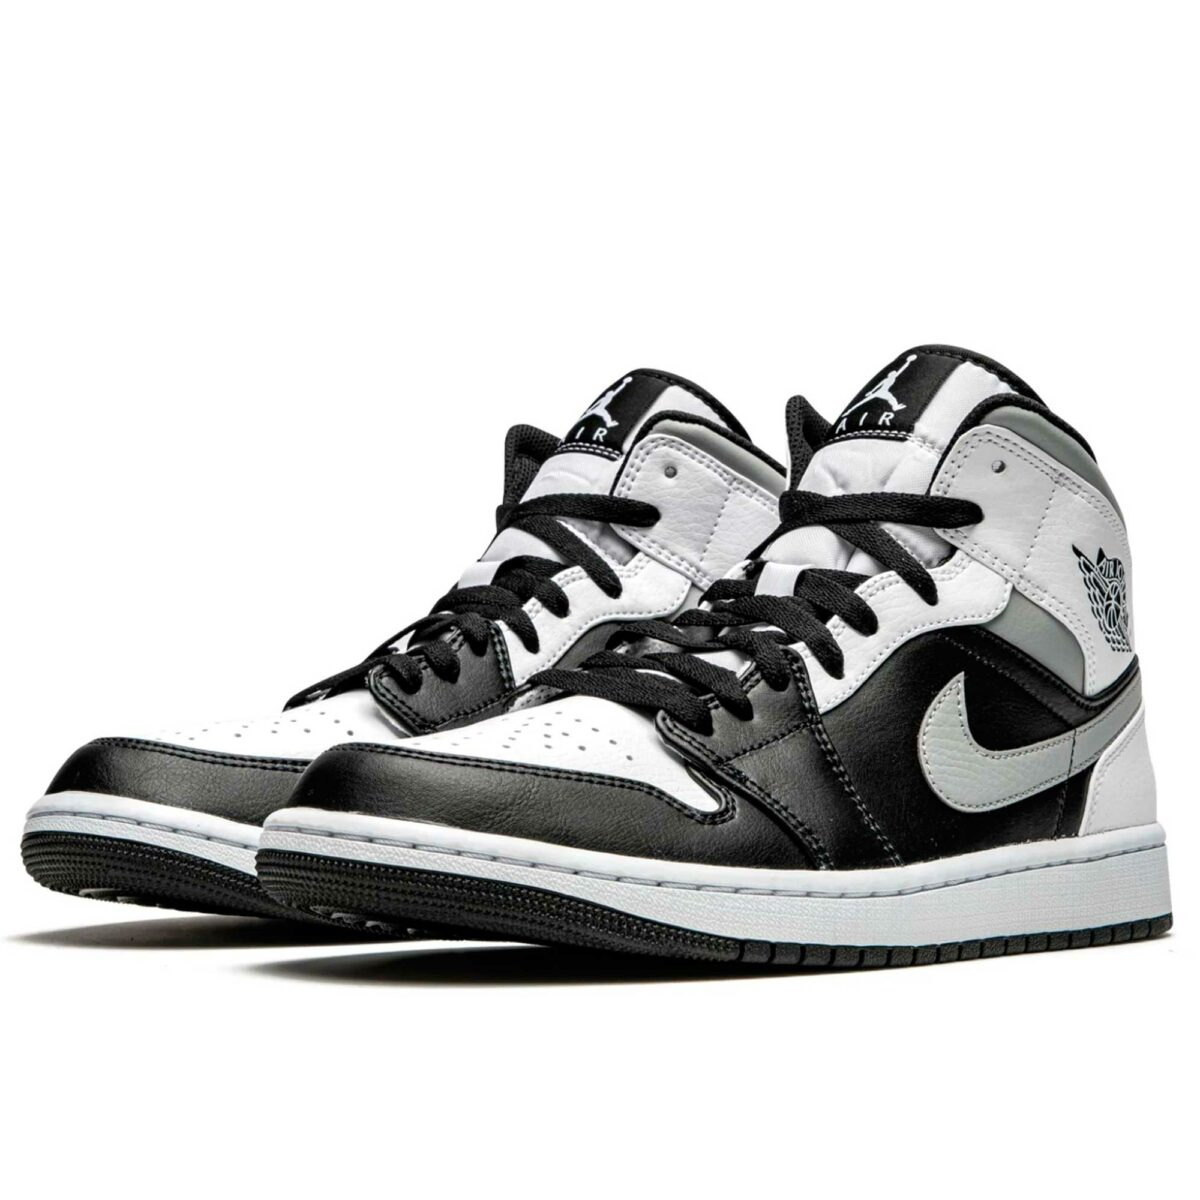 nike air jordan 1 mid white shadow 554724_073 купить